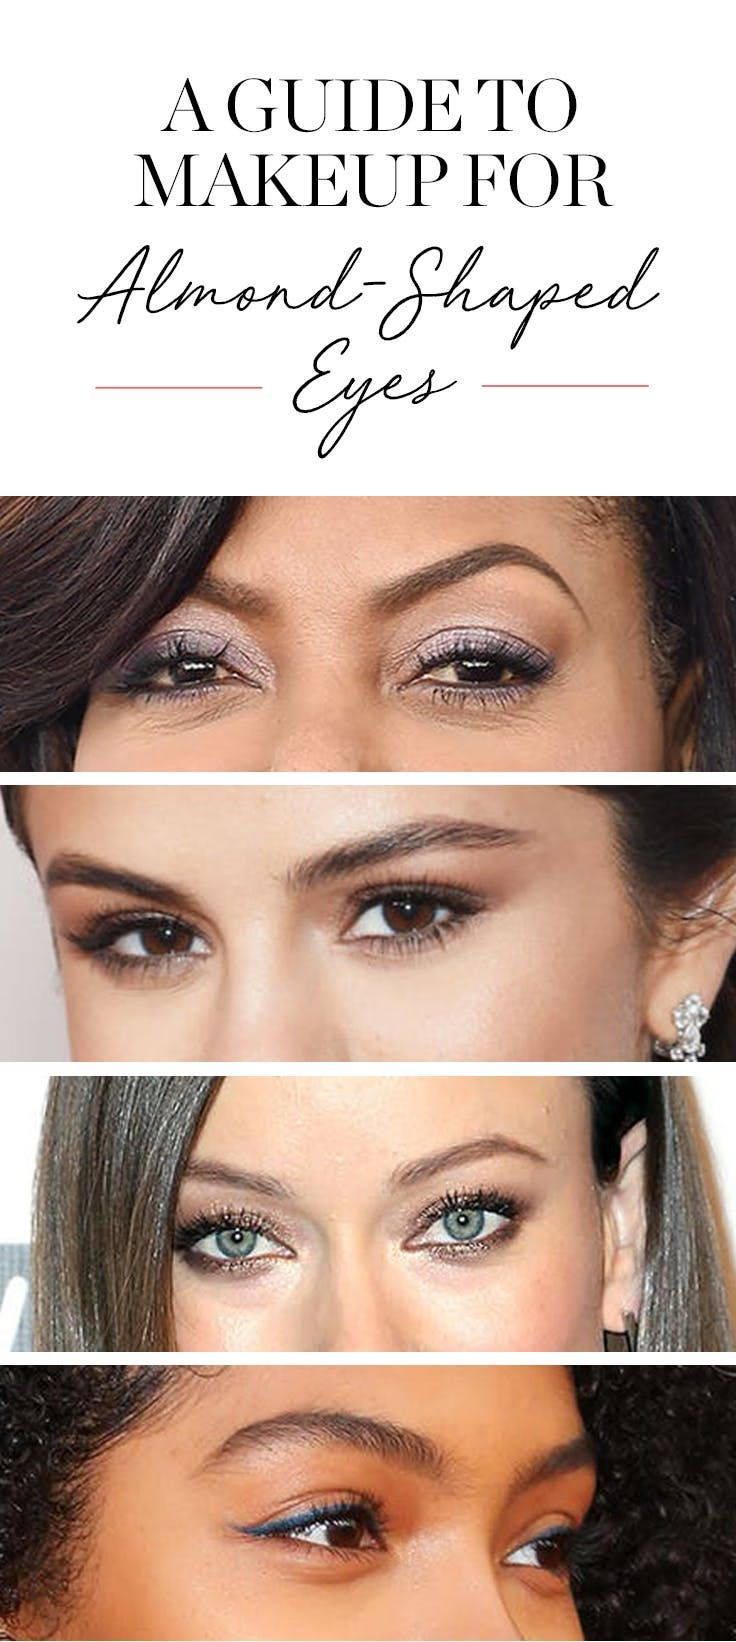 A Definitive Guide to Makeup for Almond-Shaped Eyes via @PureWow